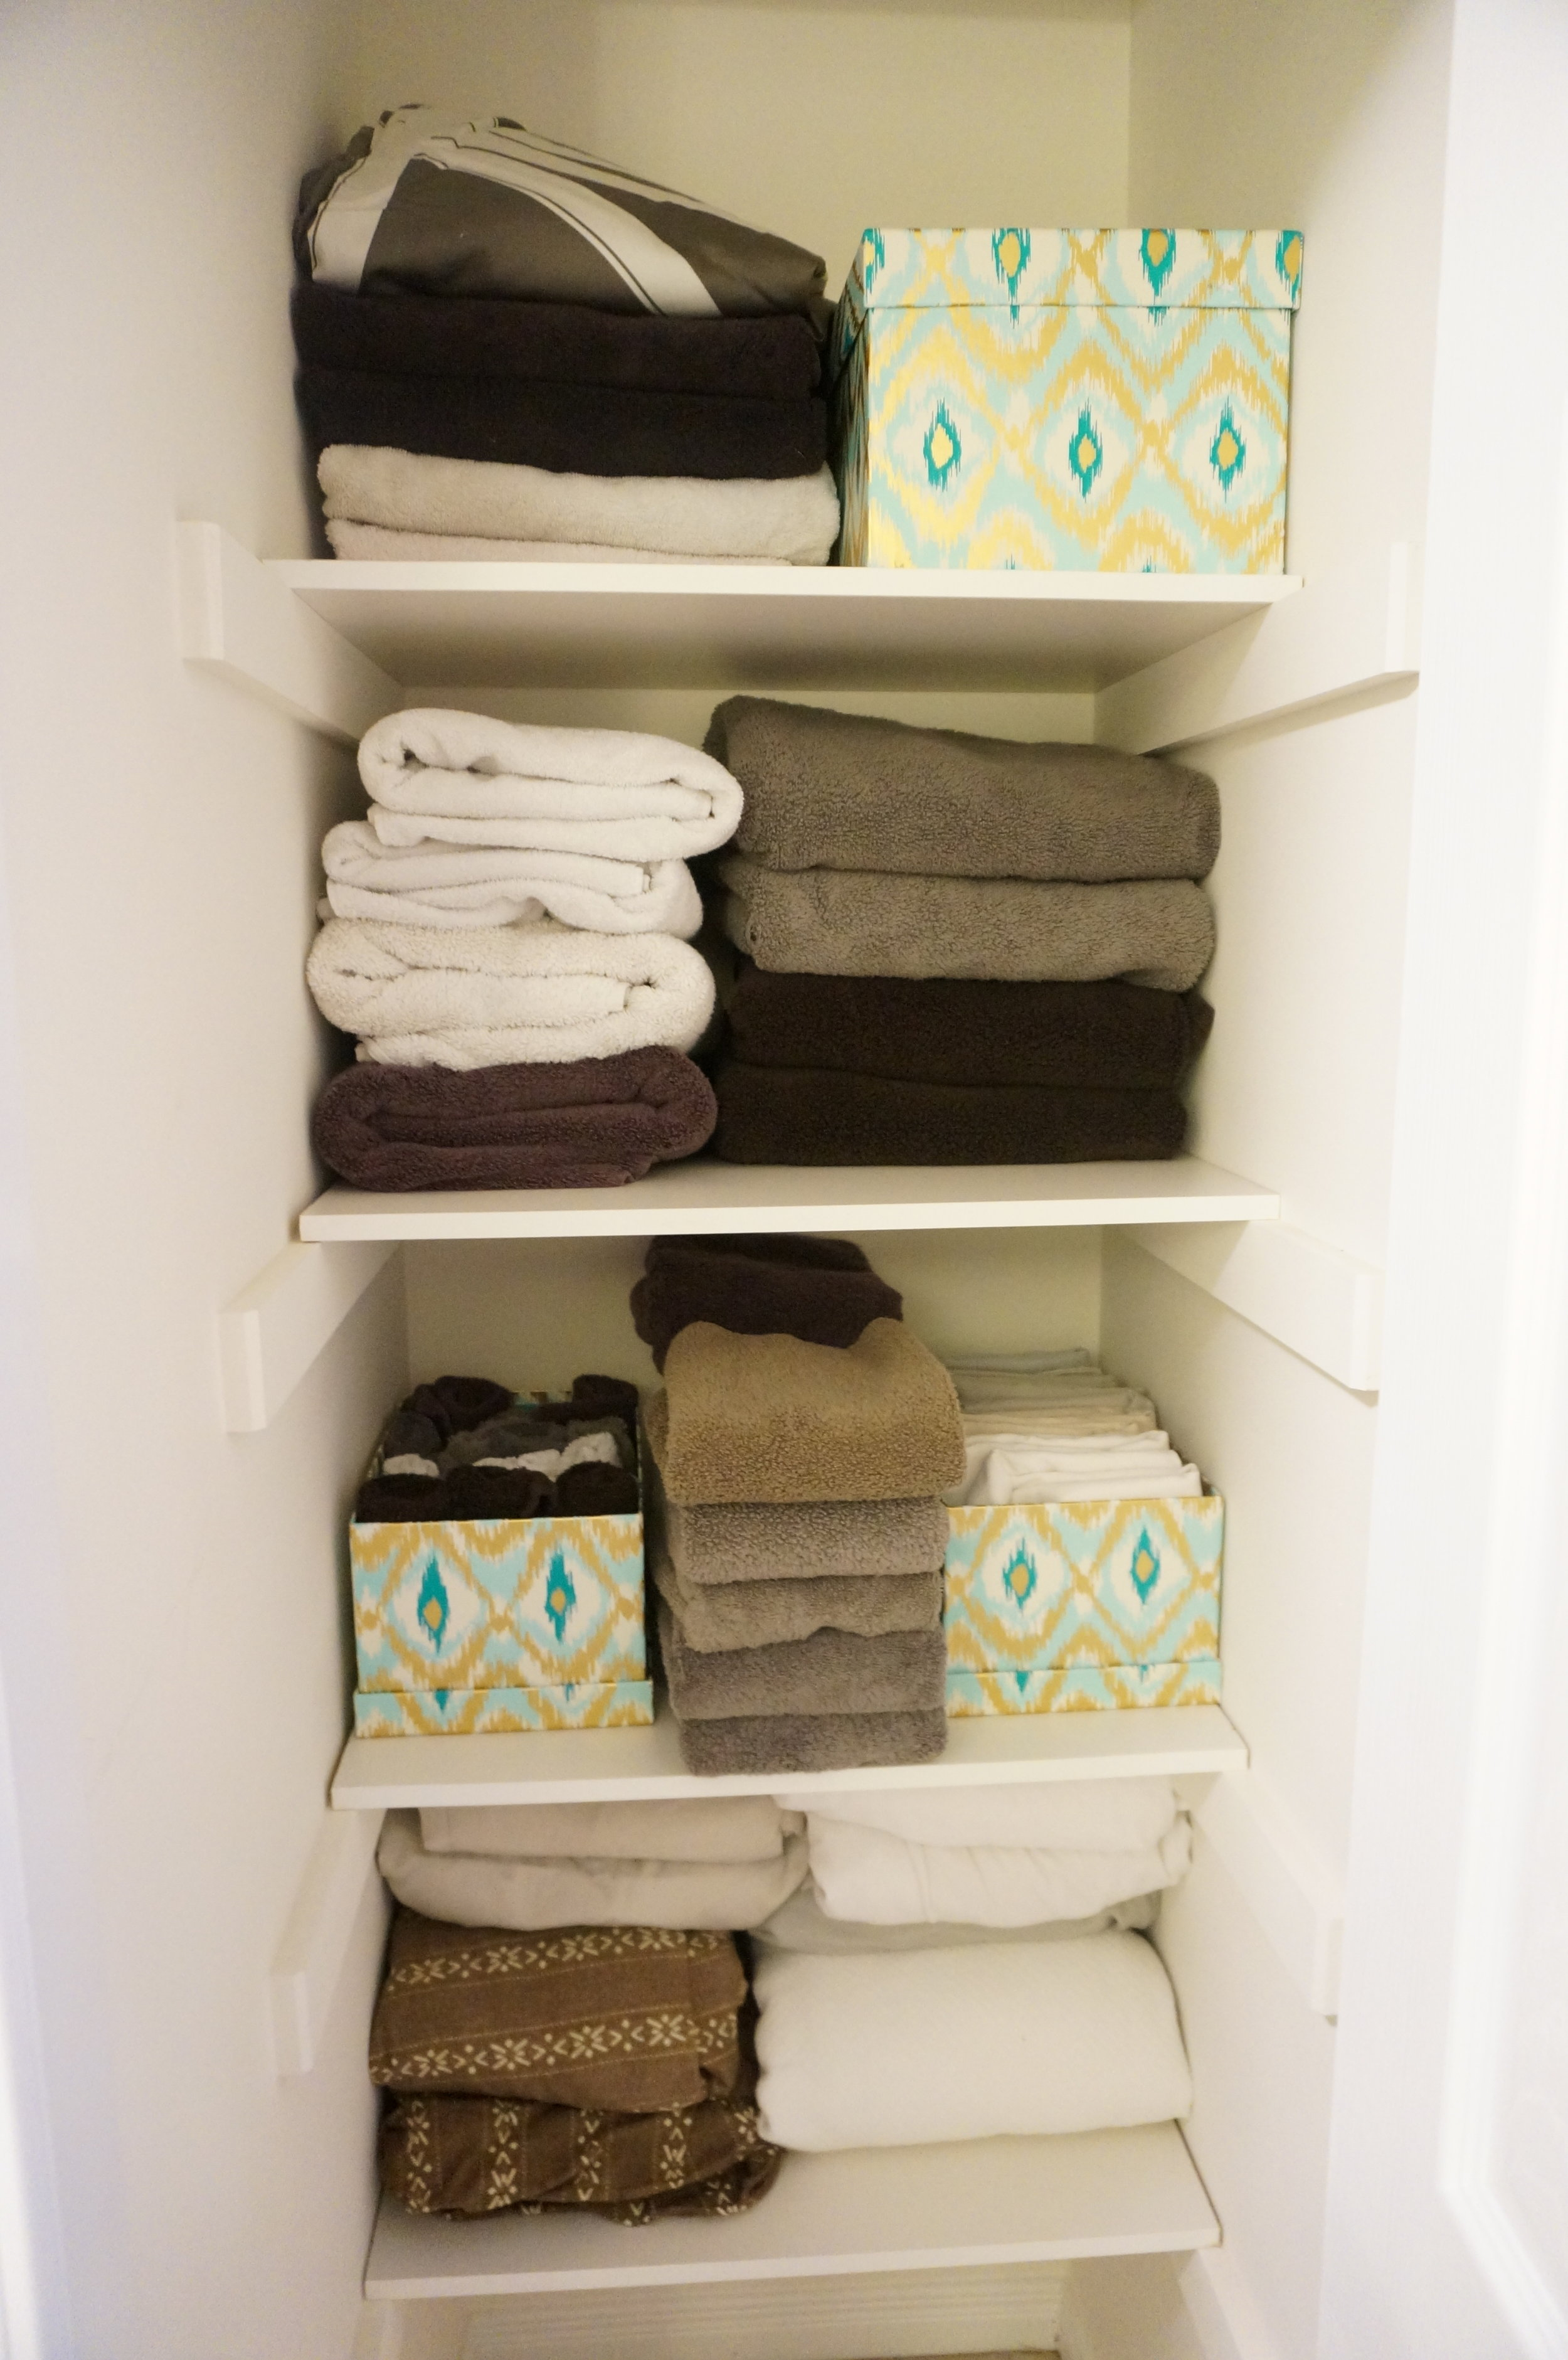 Staging and organizing your linen closet